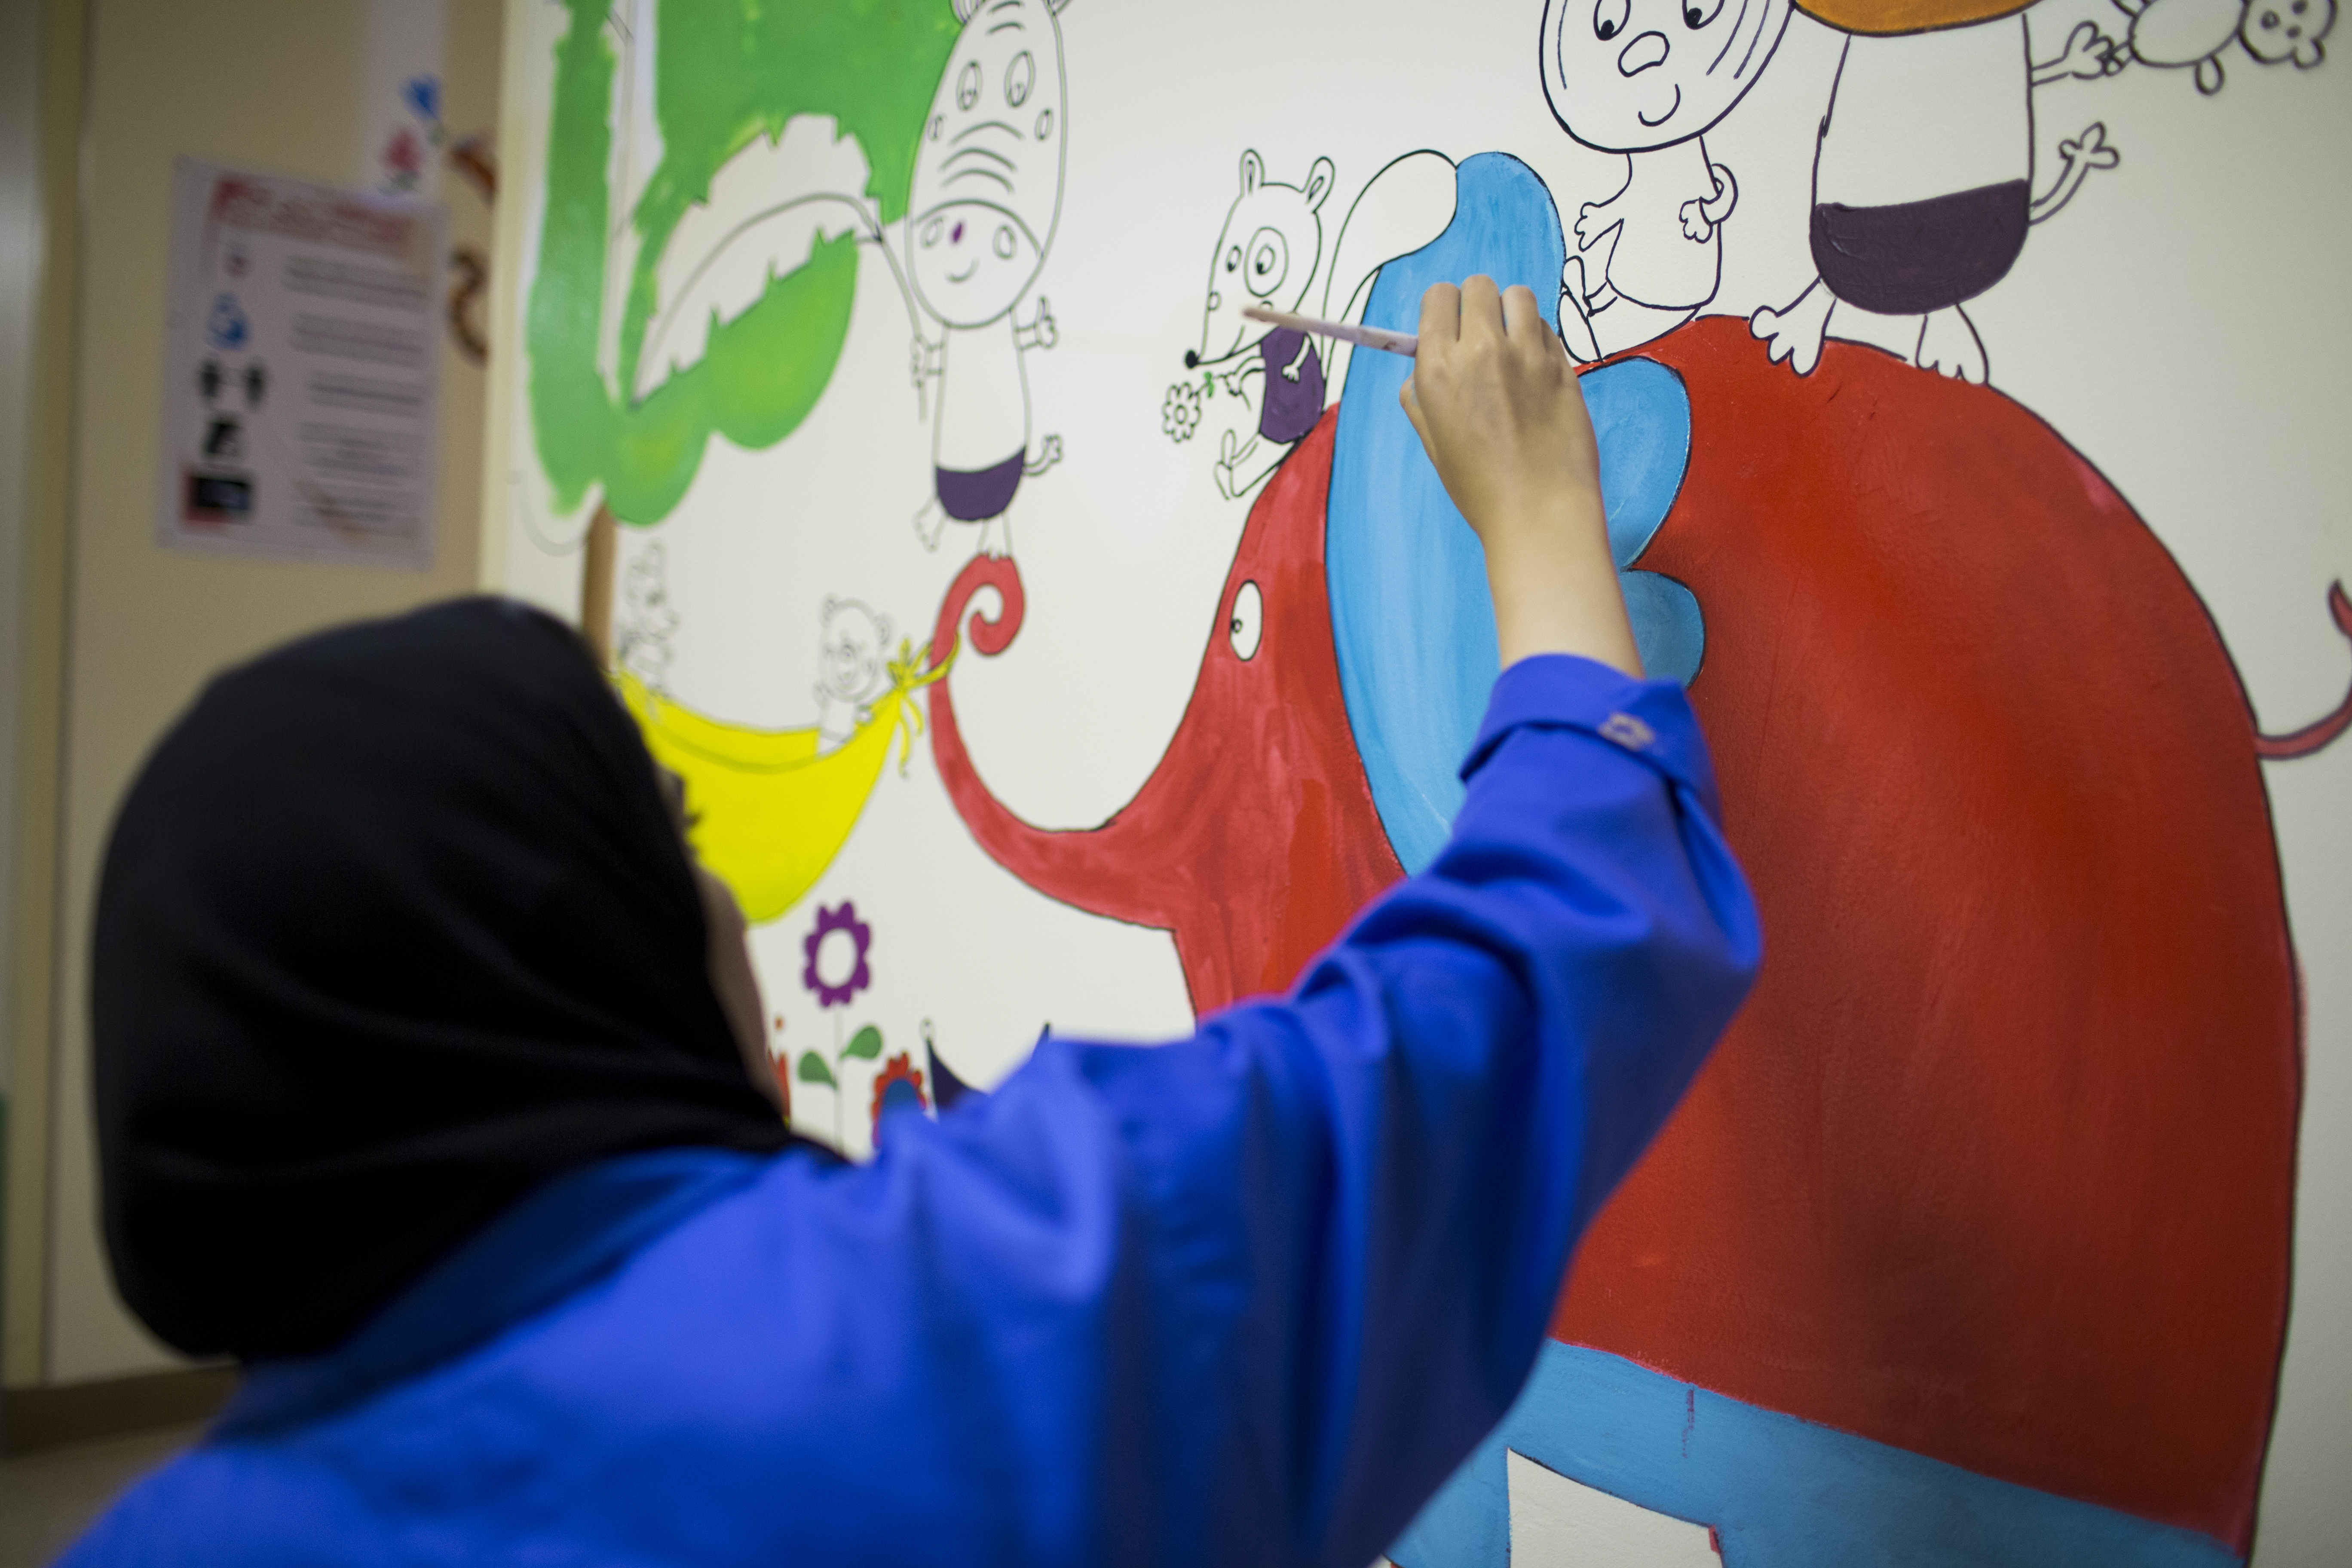 Omantel 'Colour Their World' brings cheer to children at Royal Hospital